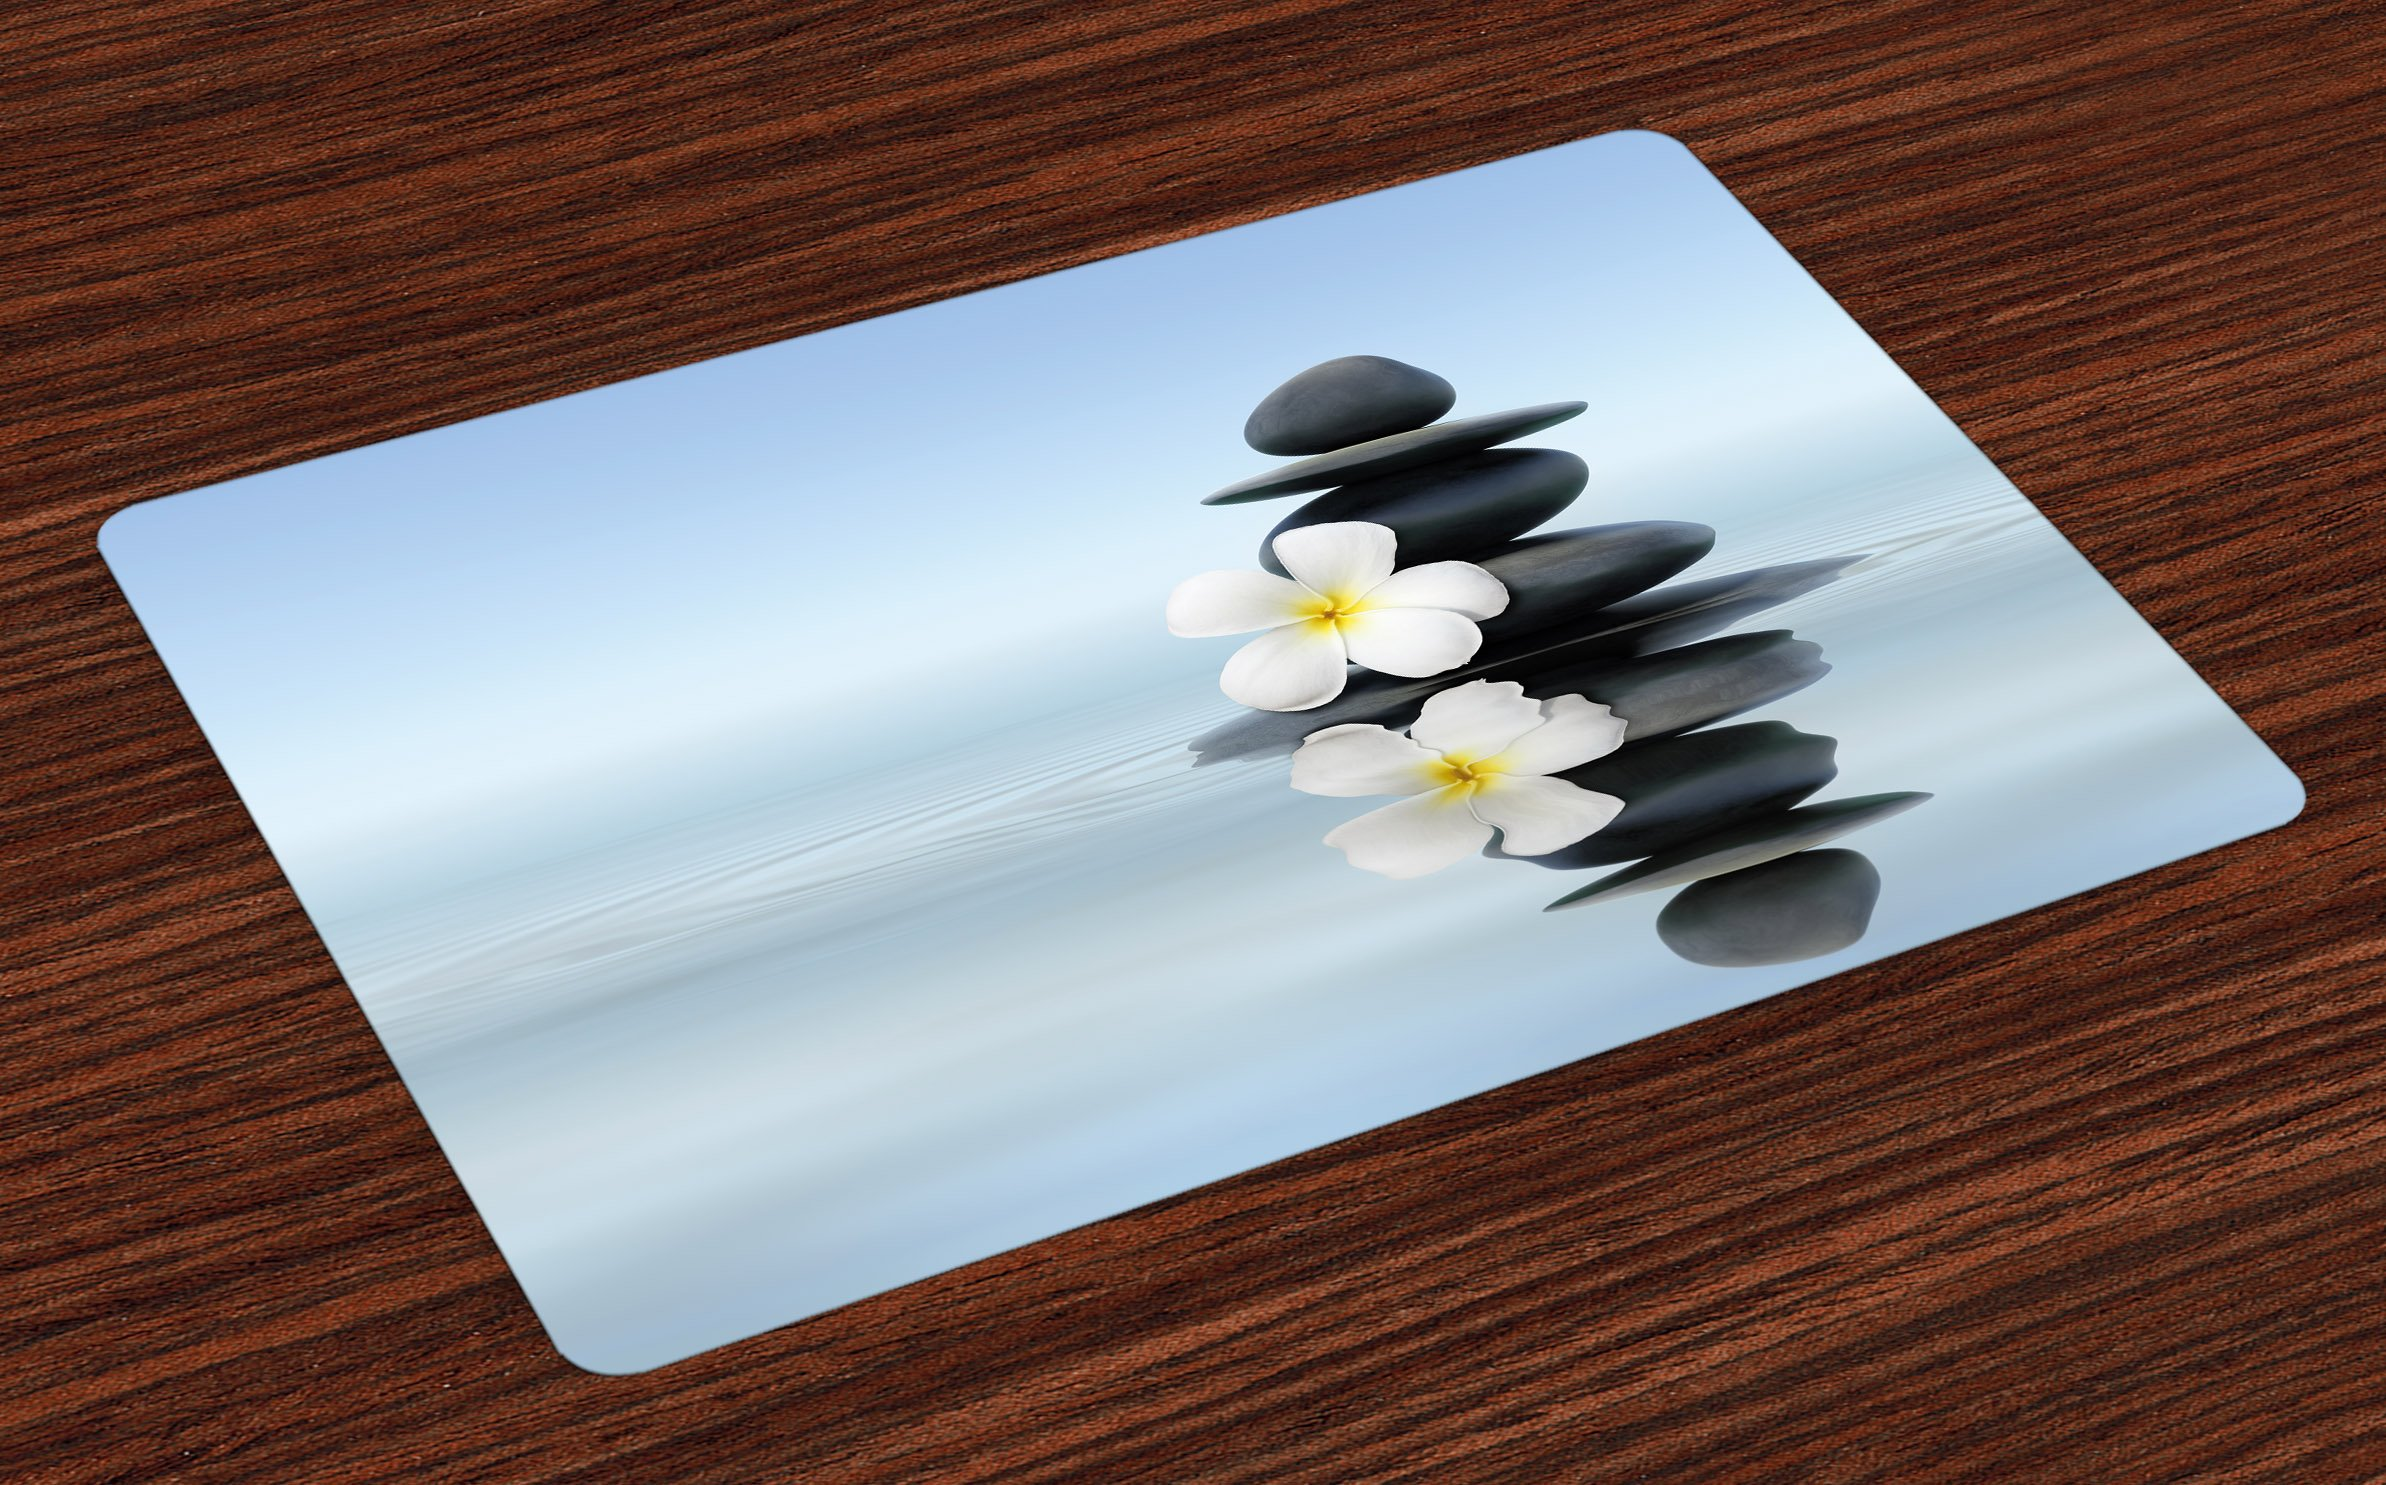 Ambesonne Spa Place Mats Set of 4, Hot Zen Massage Stones with Asian Frangipani Plumera Reflection on The Waters, Washable Fabric Placemats for Dining Room Kitchen Table Decor, Black and White by Ambesonne (Image #1)